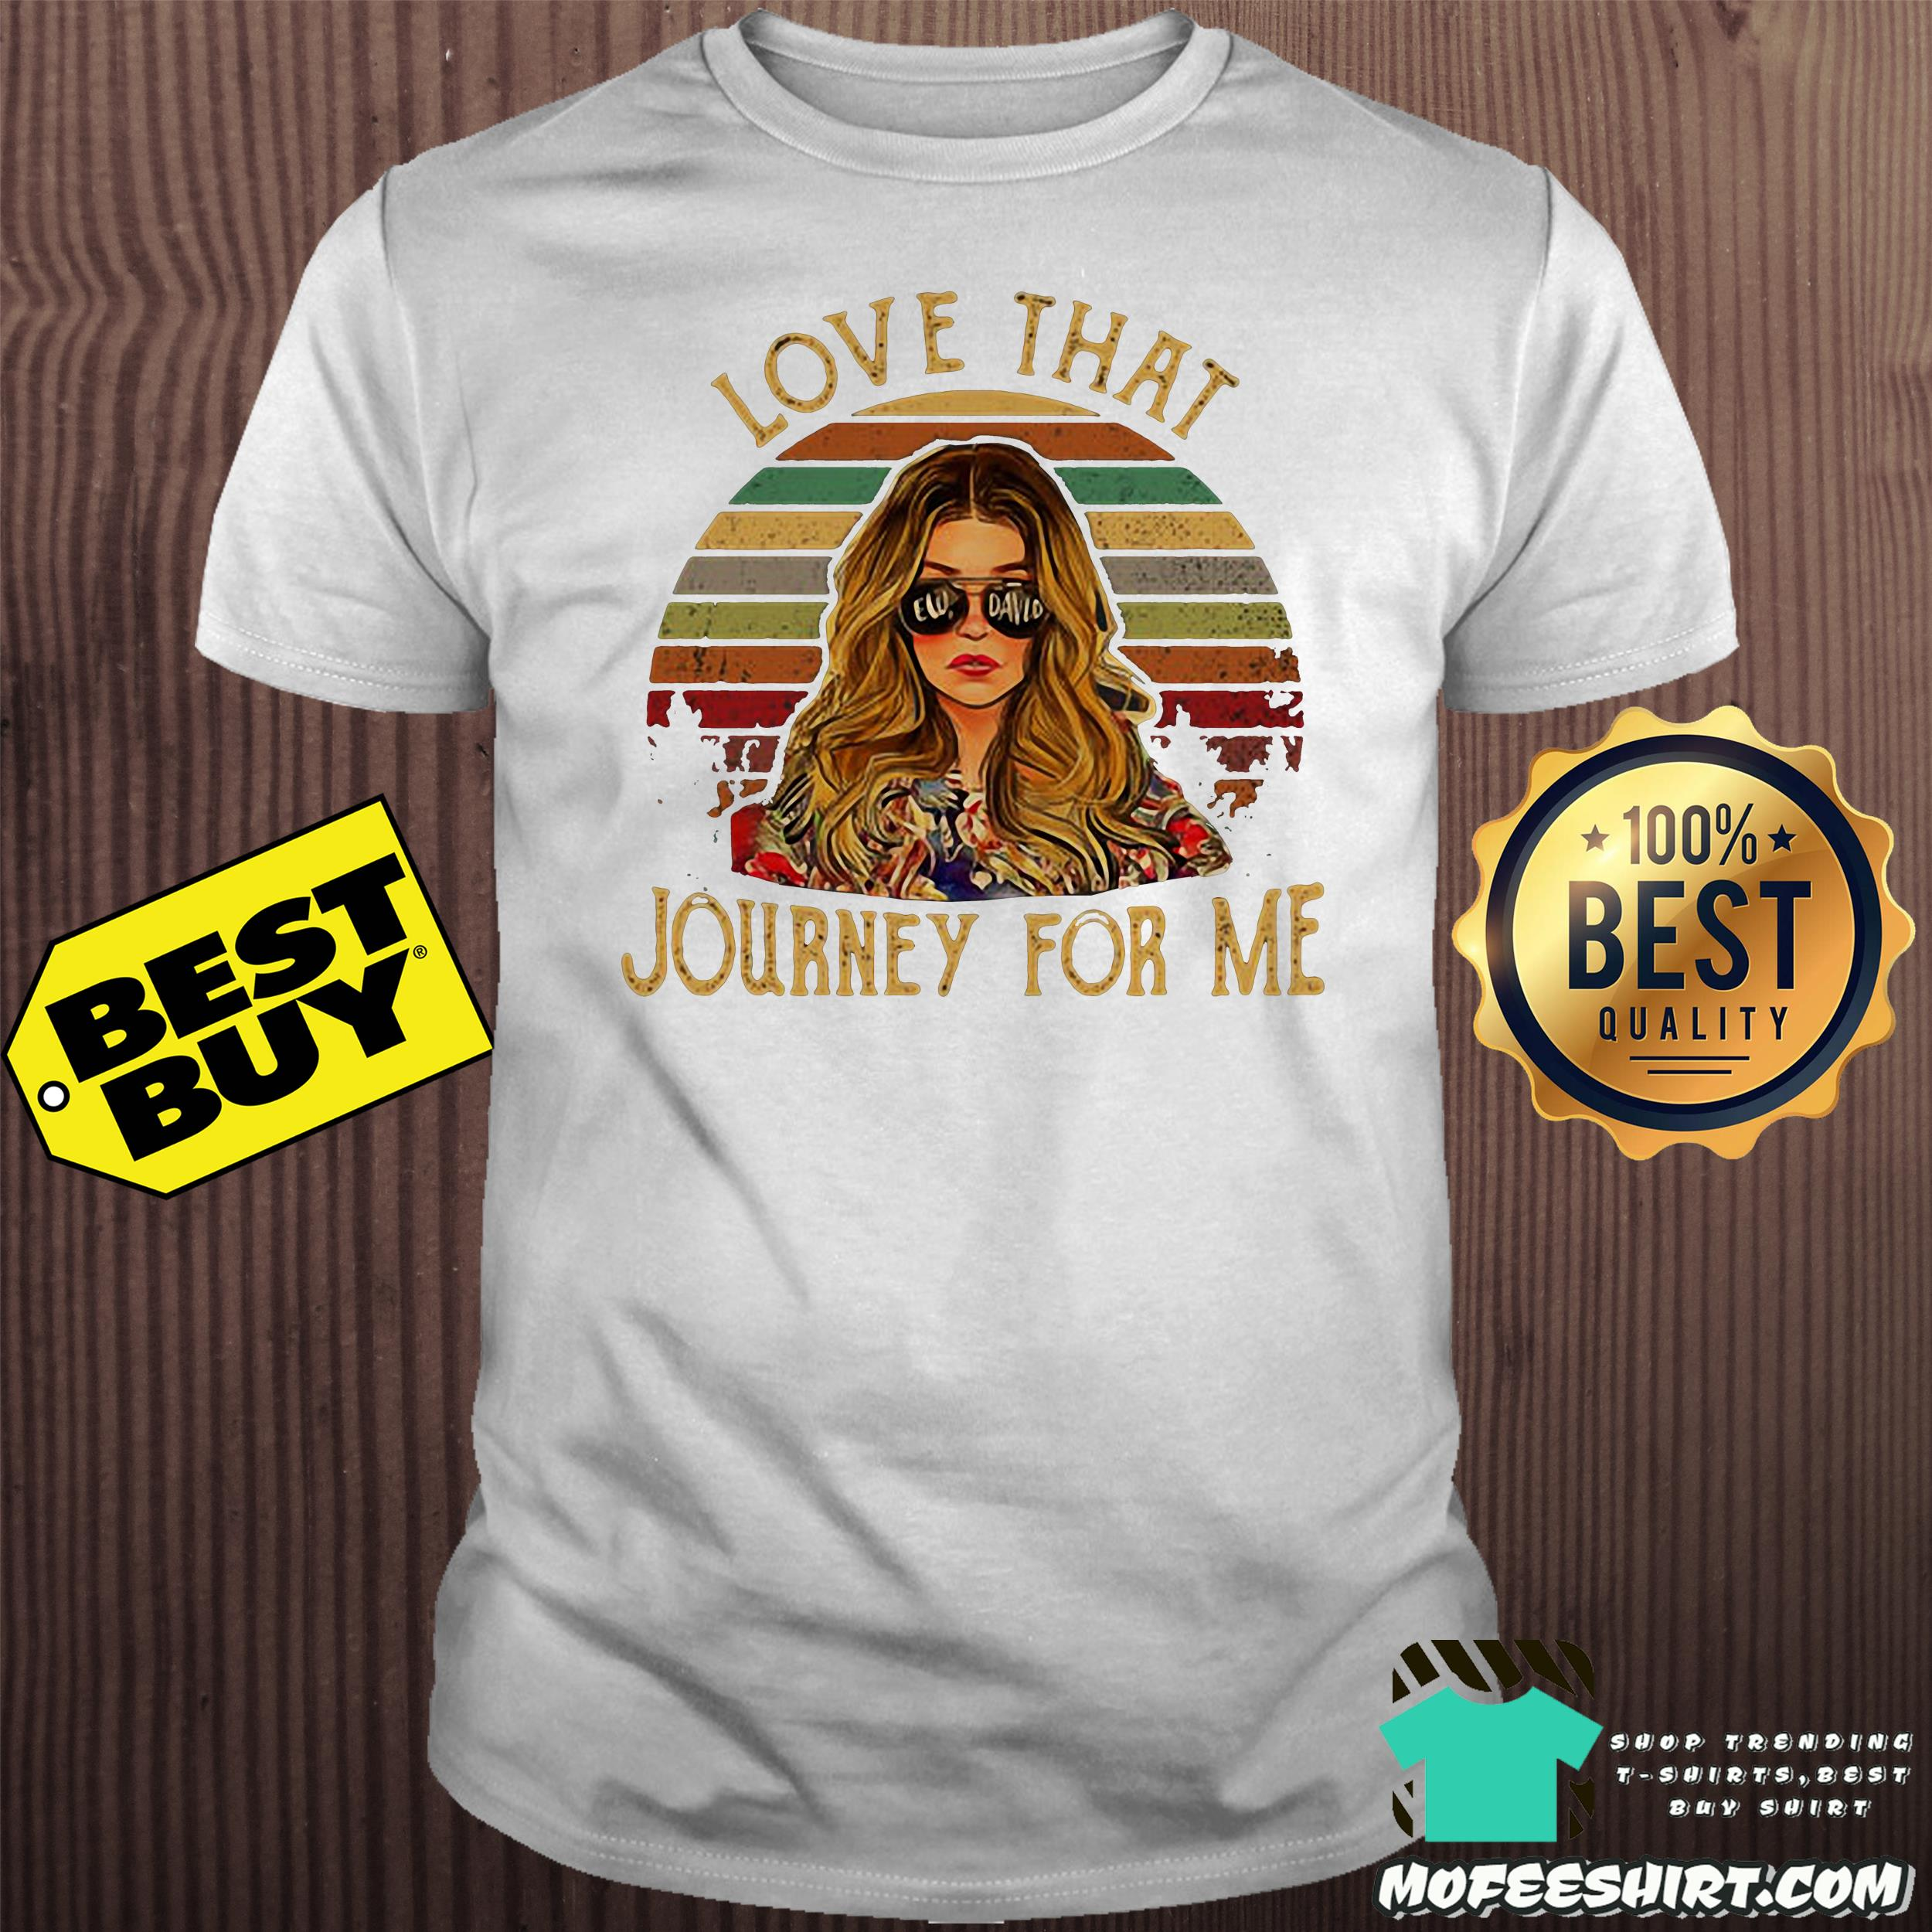 6 1 - Ew David love that Journey for me vintage shirt